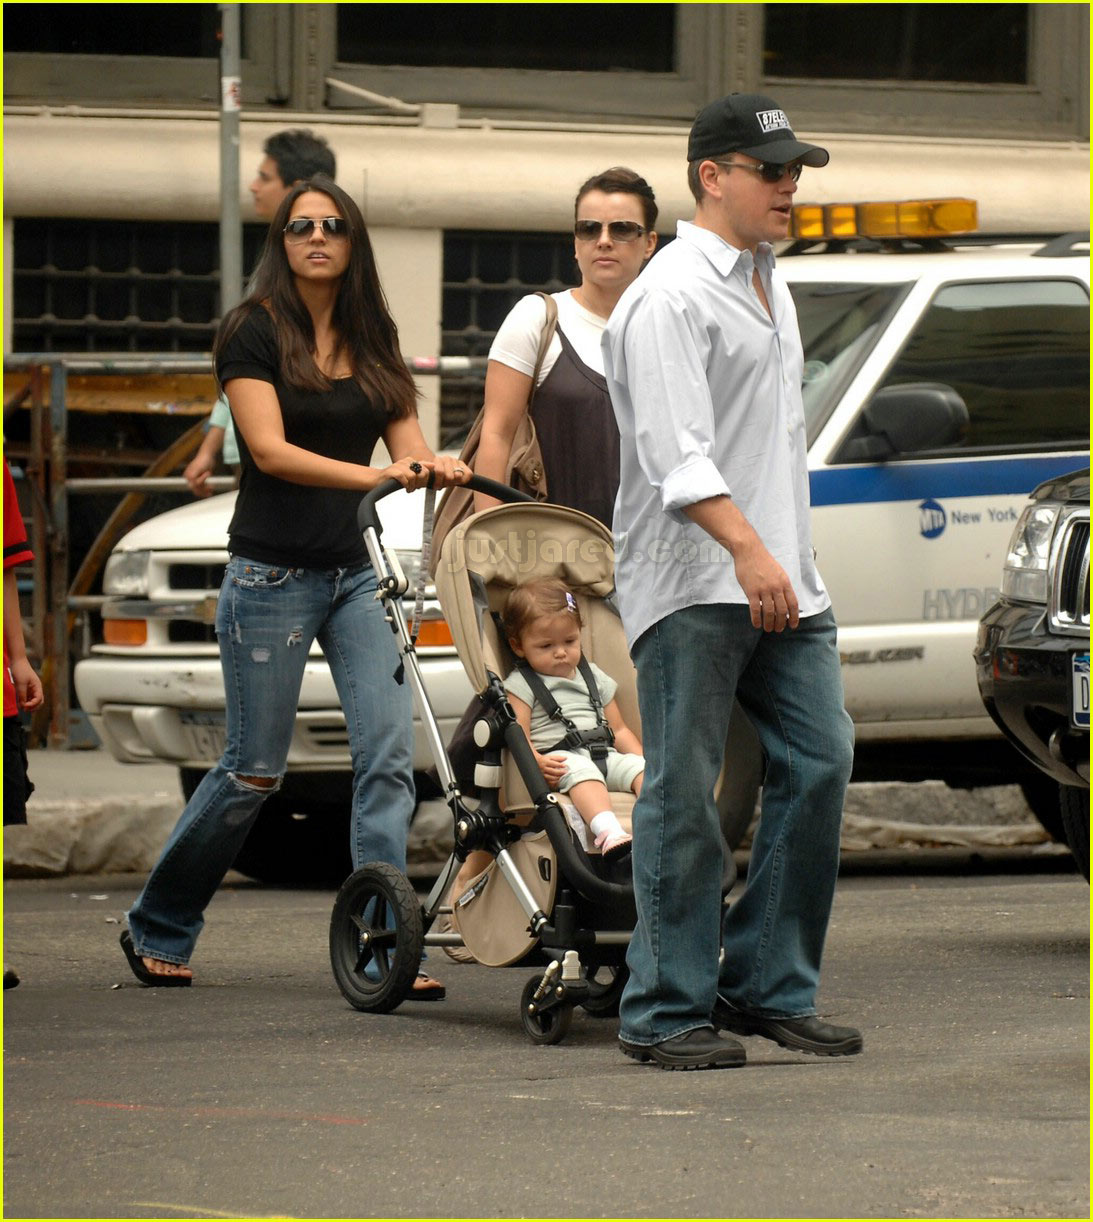 ... of 04 isabella damon birthday matt damon | Photo 431001 | Just Jared